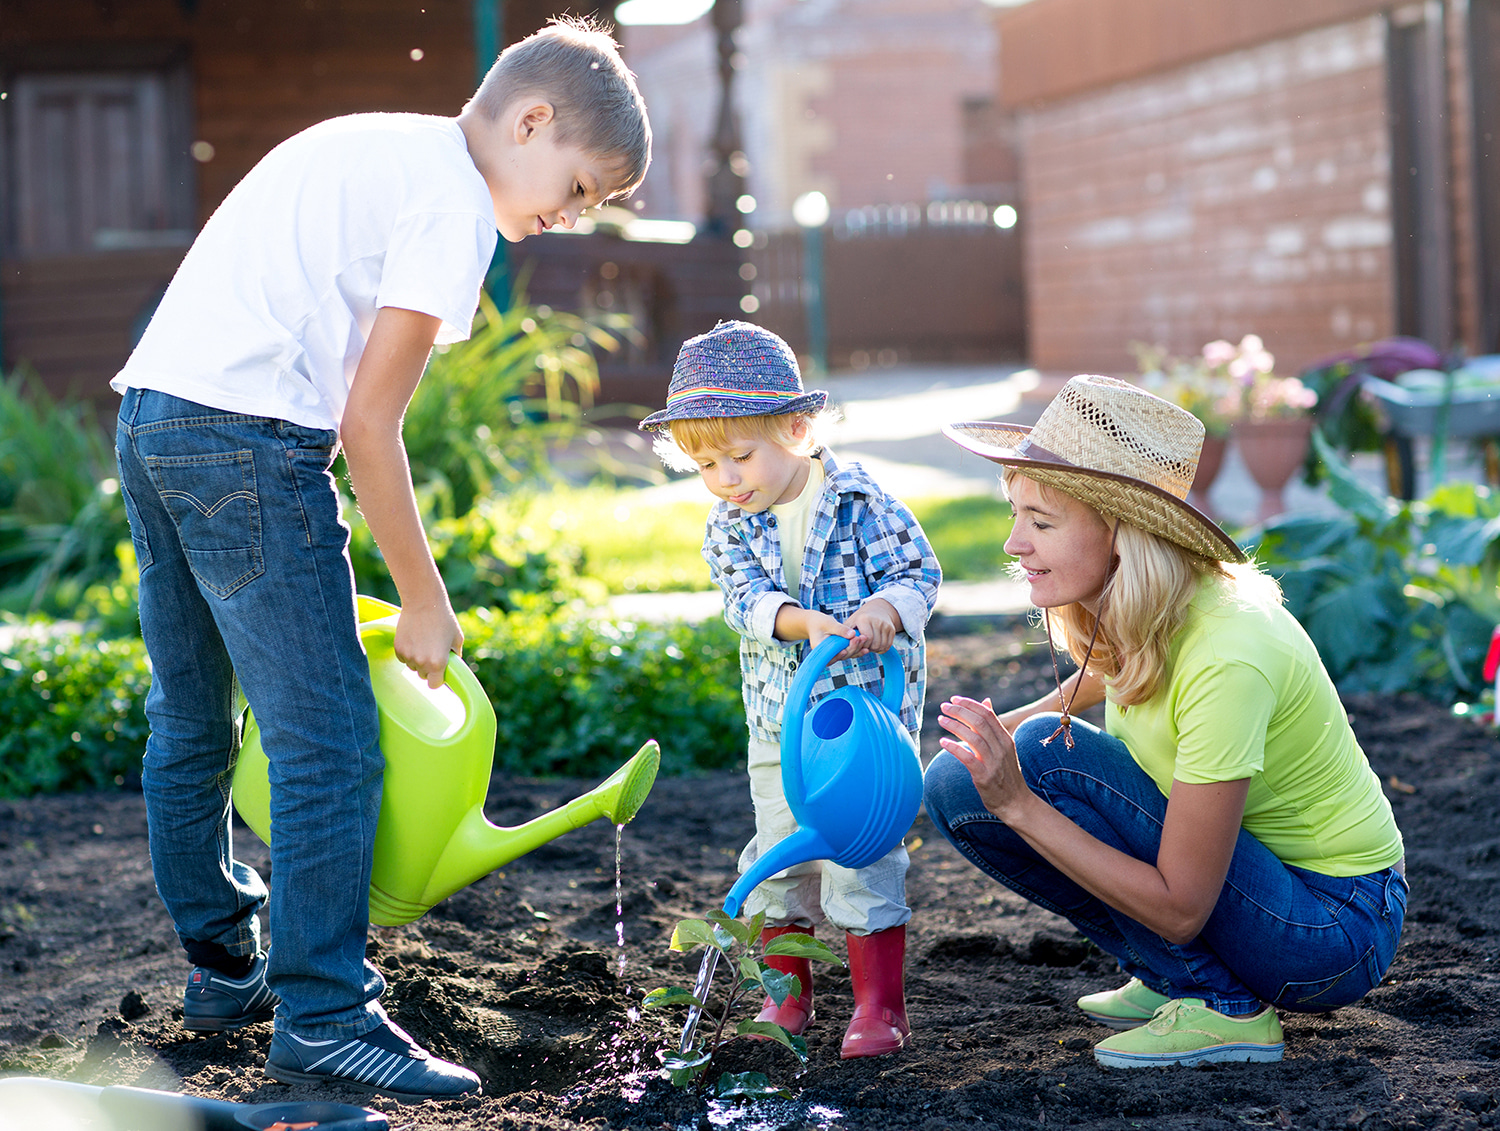 Learn About Math in Gardening